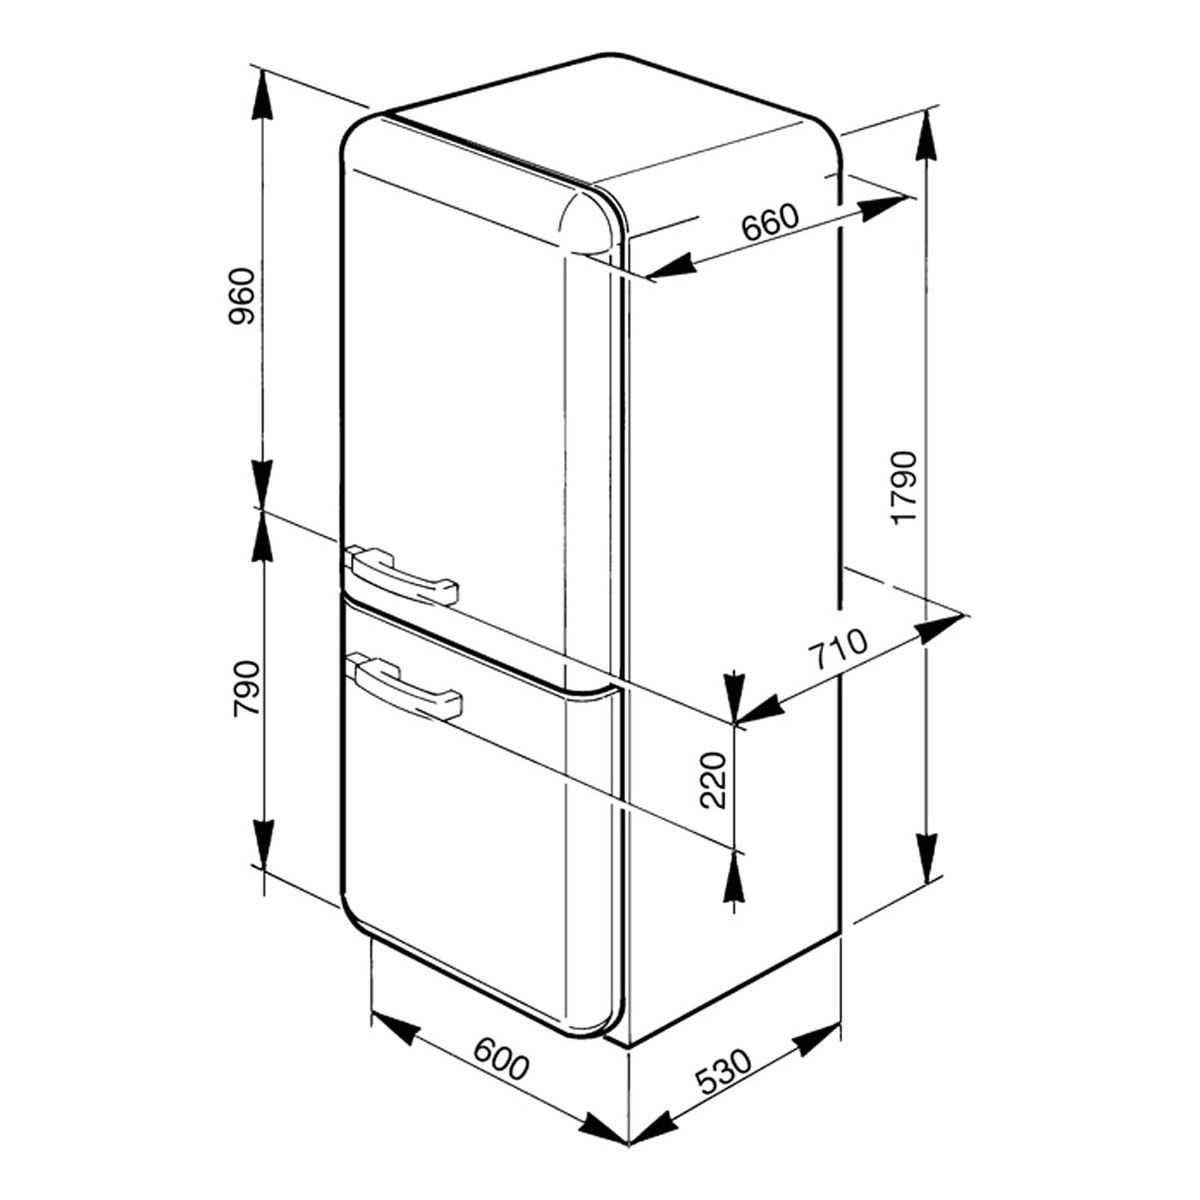 Smeg Fab32yve Dimensions The Dimensions Of The Fridge